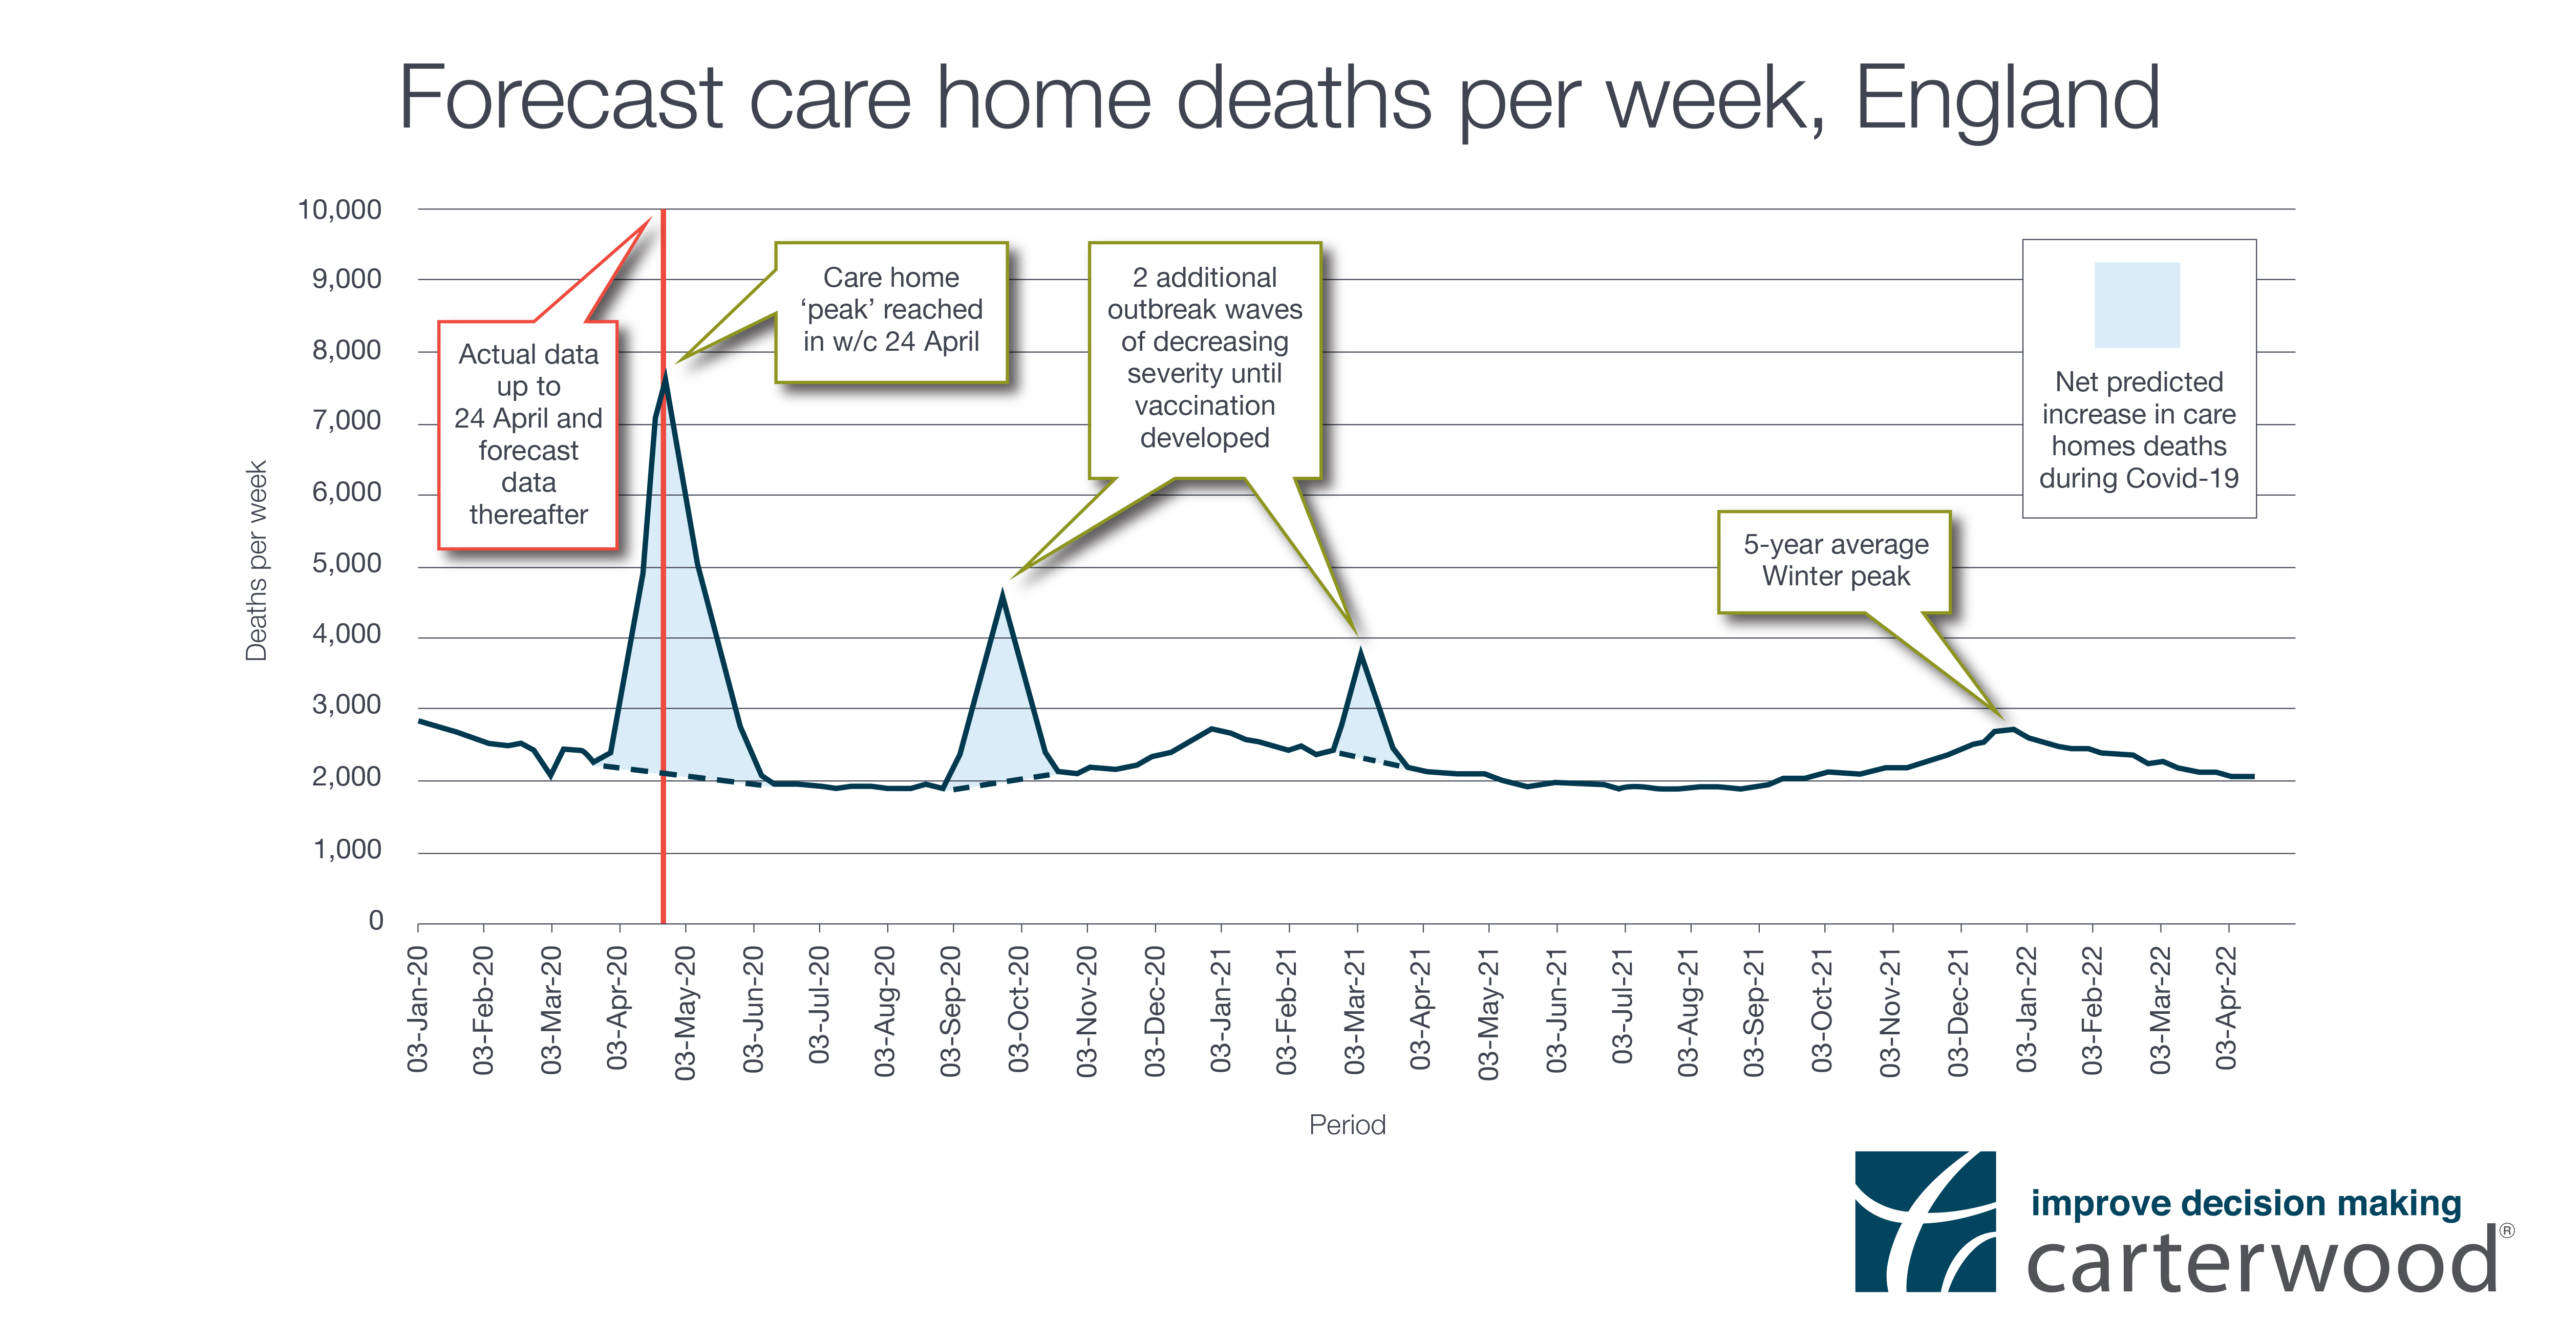 Forecast care home deaths per week, England